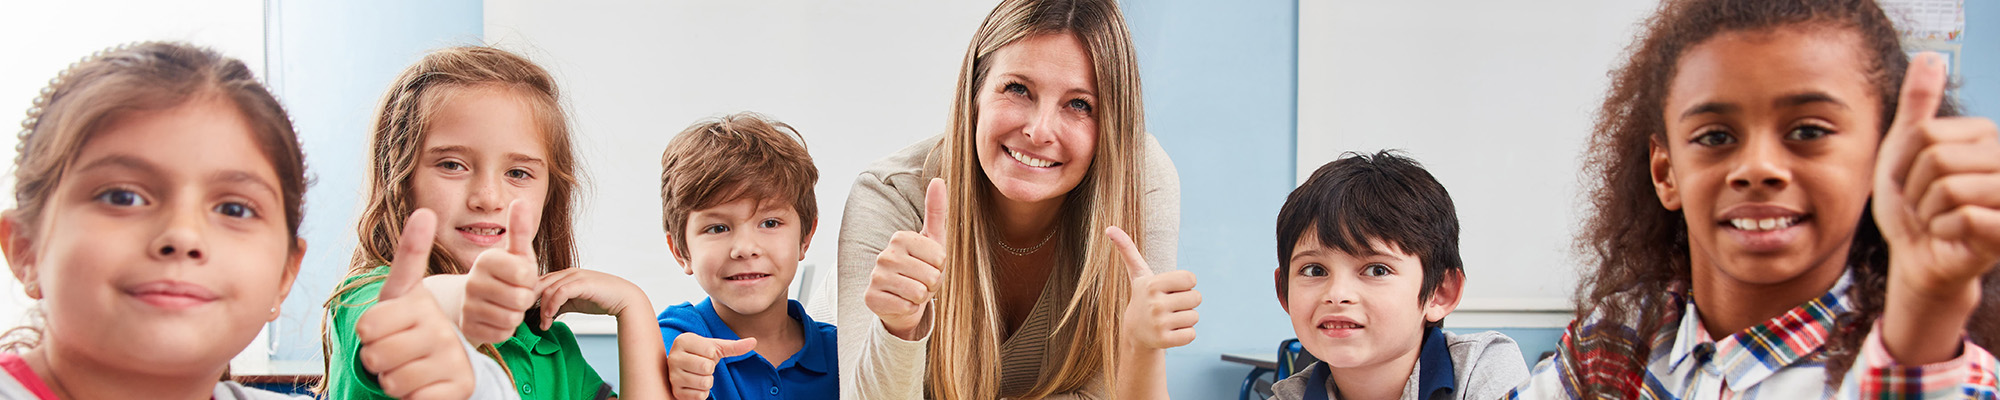 Teacher sitting at a table with happy students giving a thumbs up